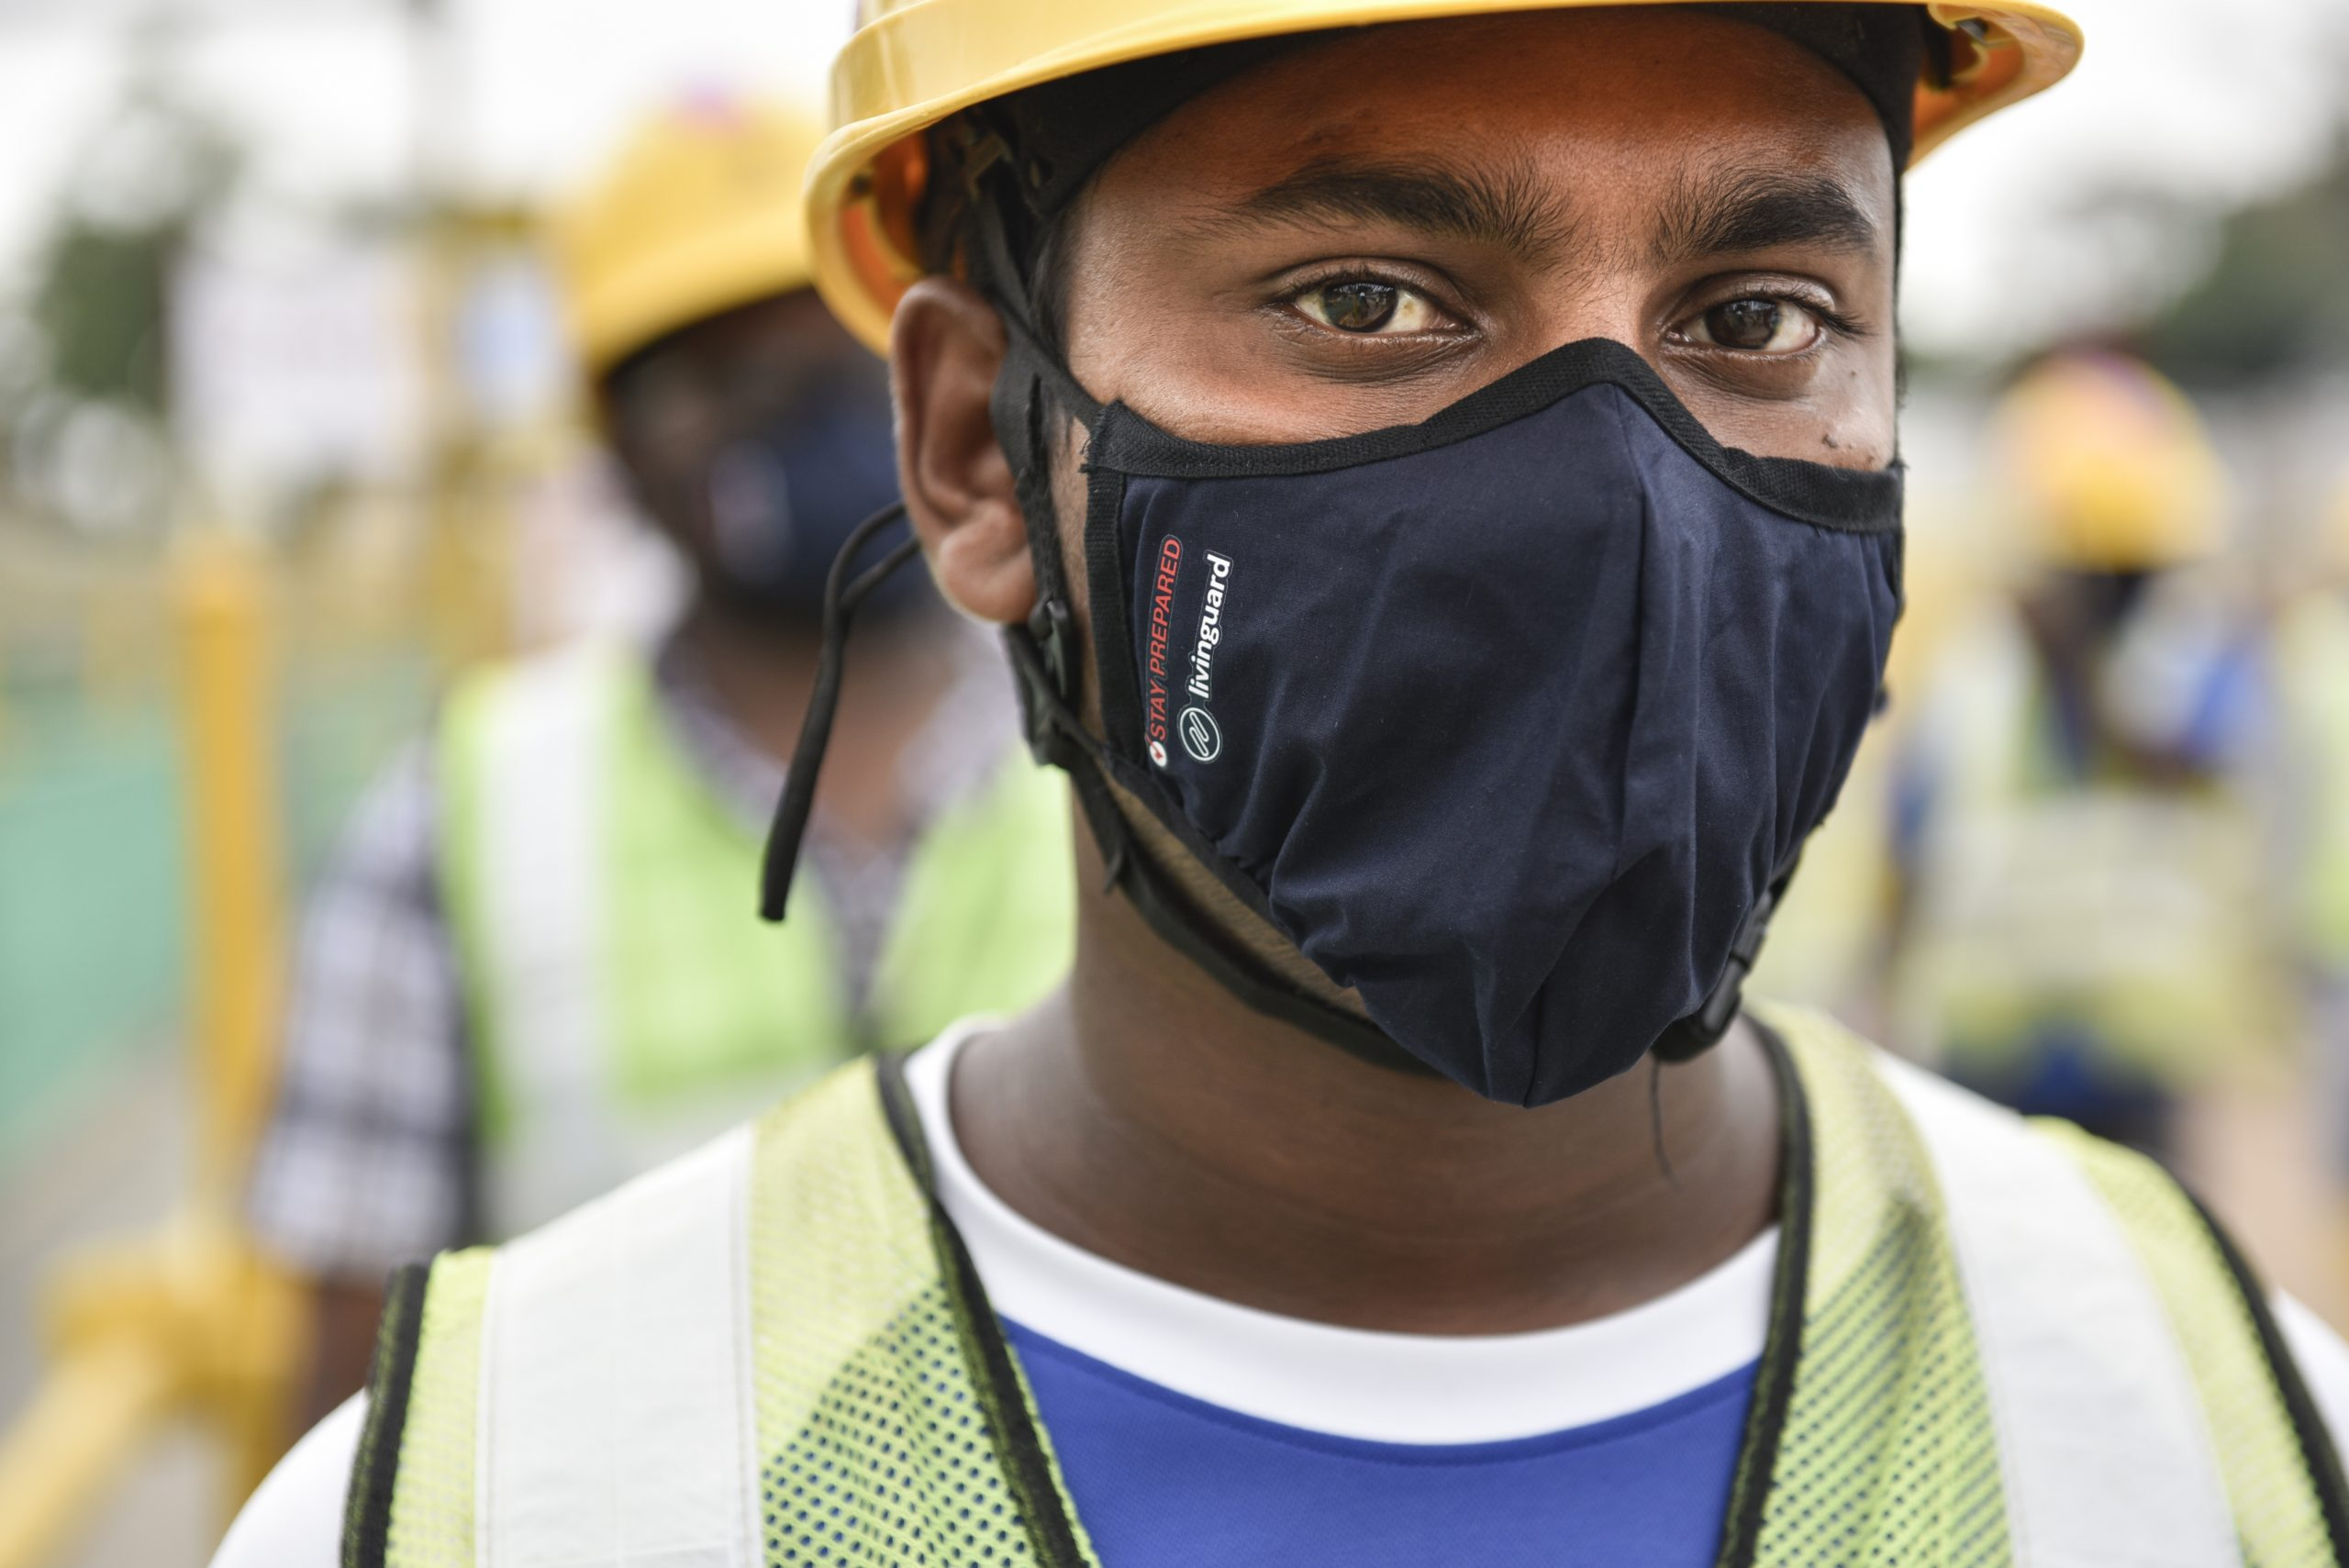 Indian national, Mr Neelakandan Kannan, 27, wears the reusable mask from Temasek Foundation. A total of 500,000 masks will be going to the built environment sector, and distribution is underway